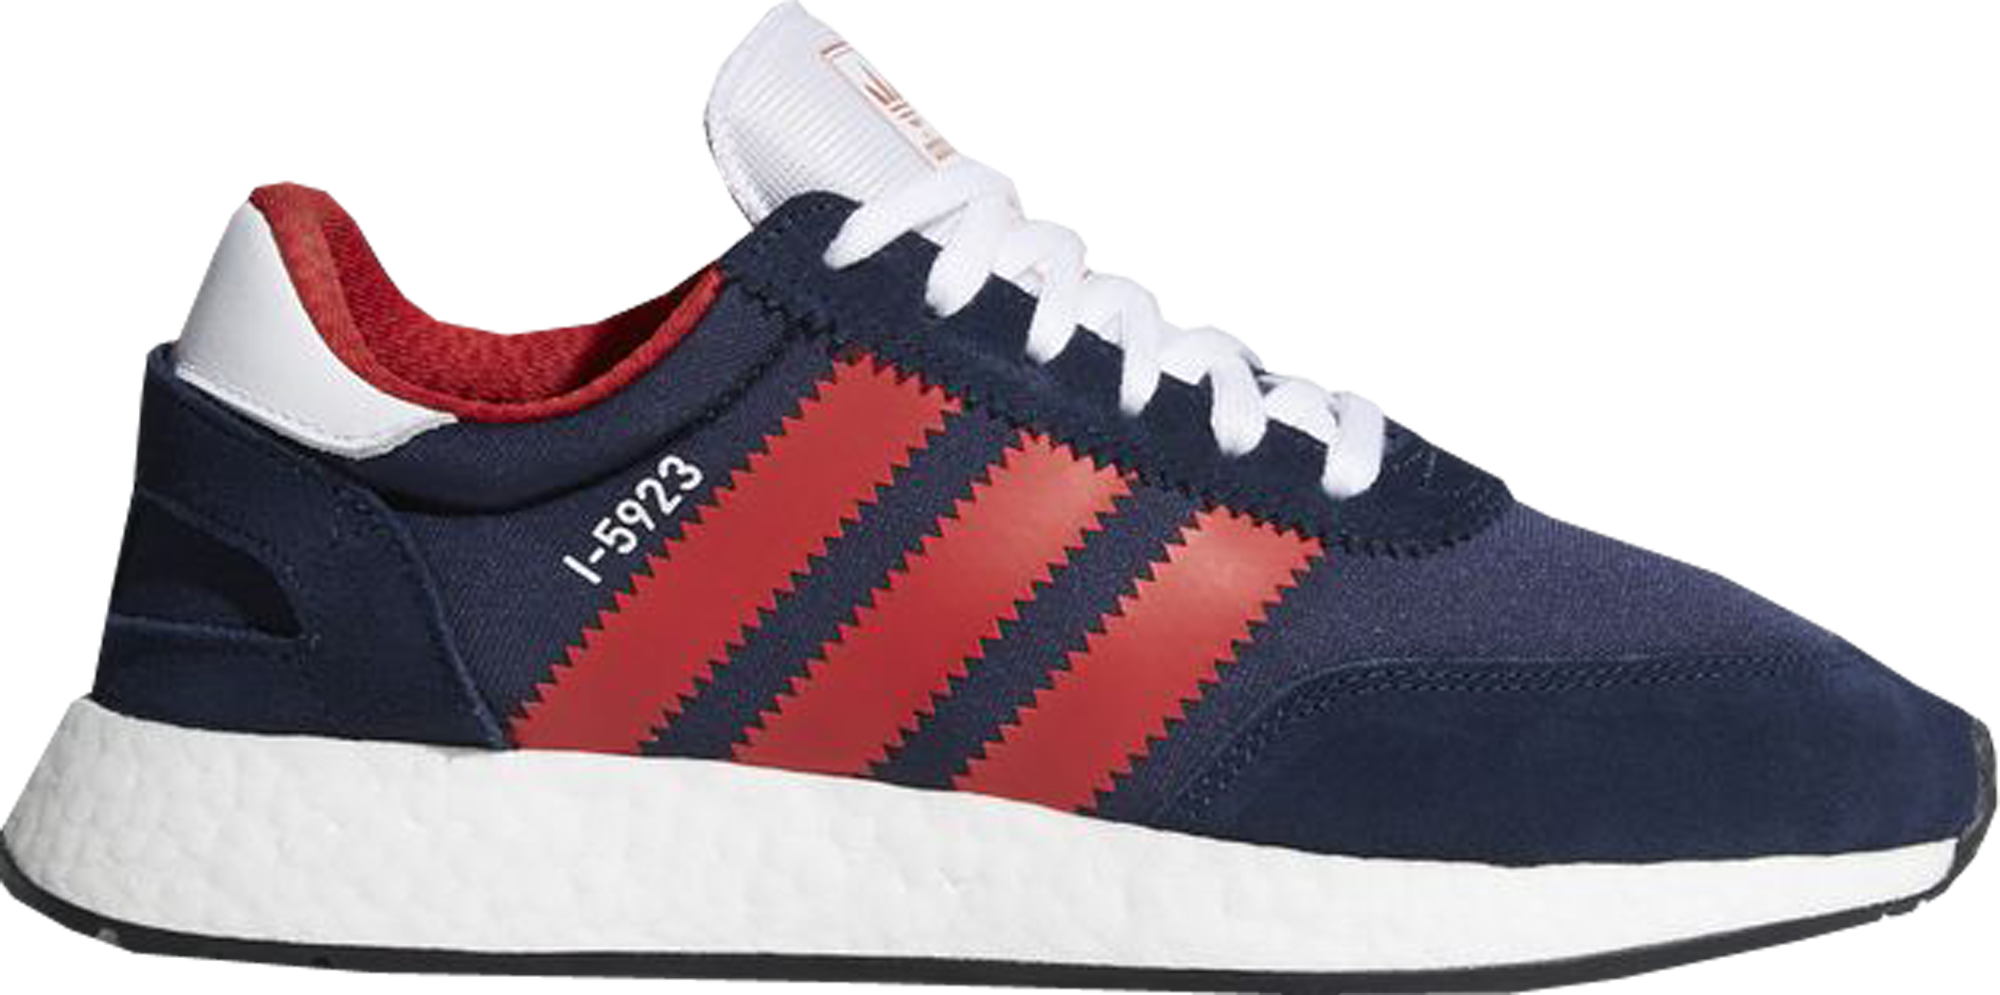 adidas I-5923 Collegiate Navy Collegiate Red